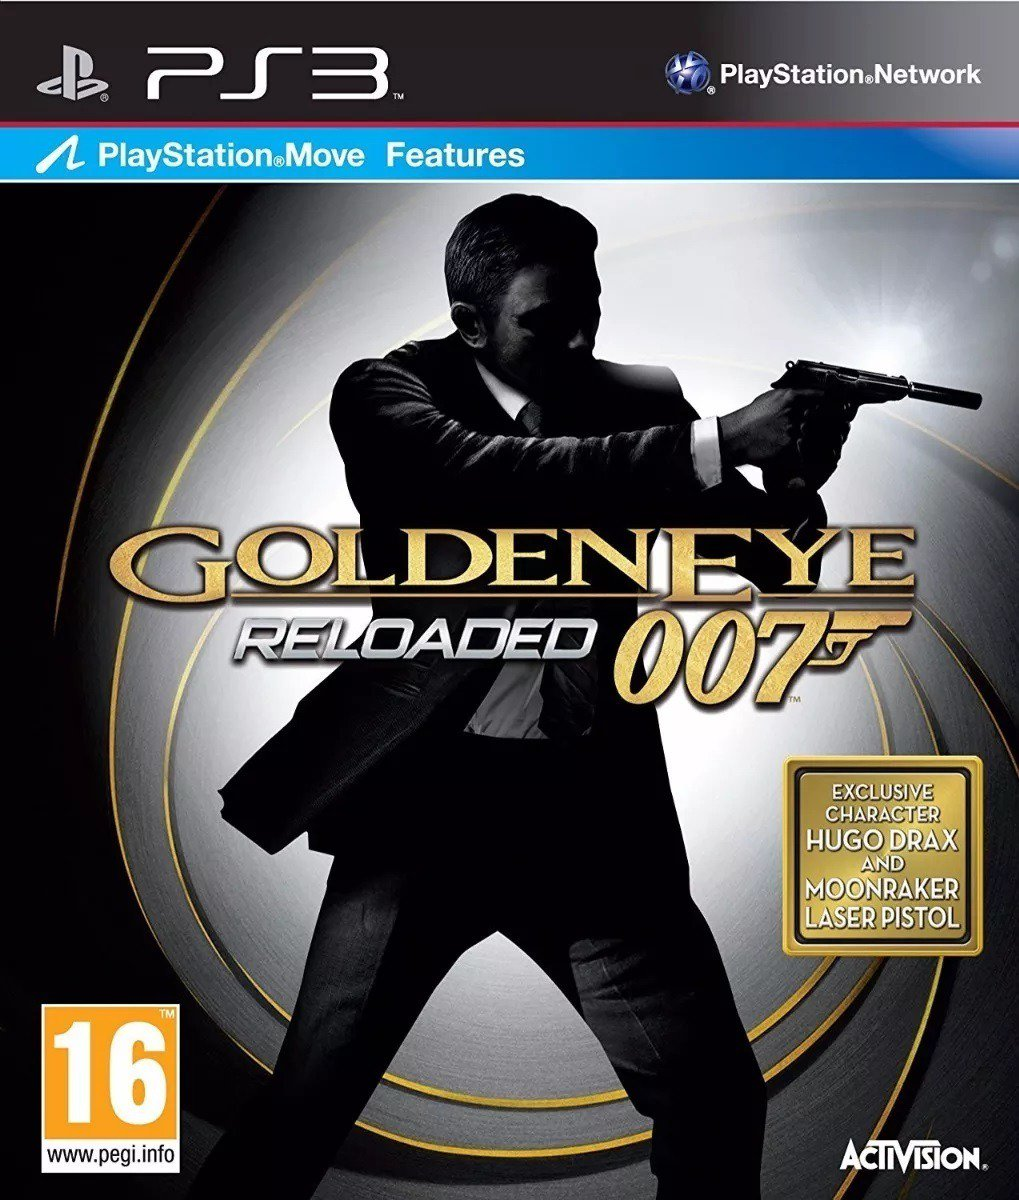 Laguna_GoldenEye_007_Reloaded_PS3_cover